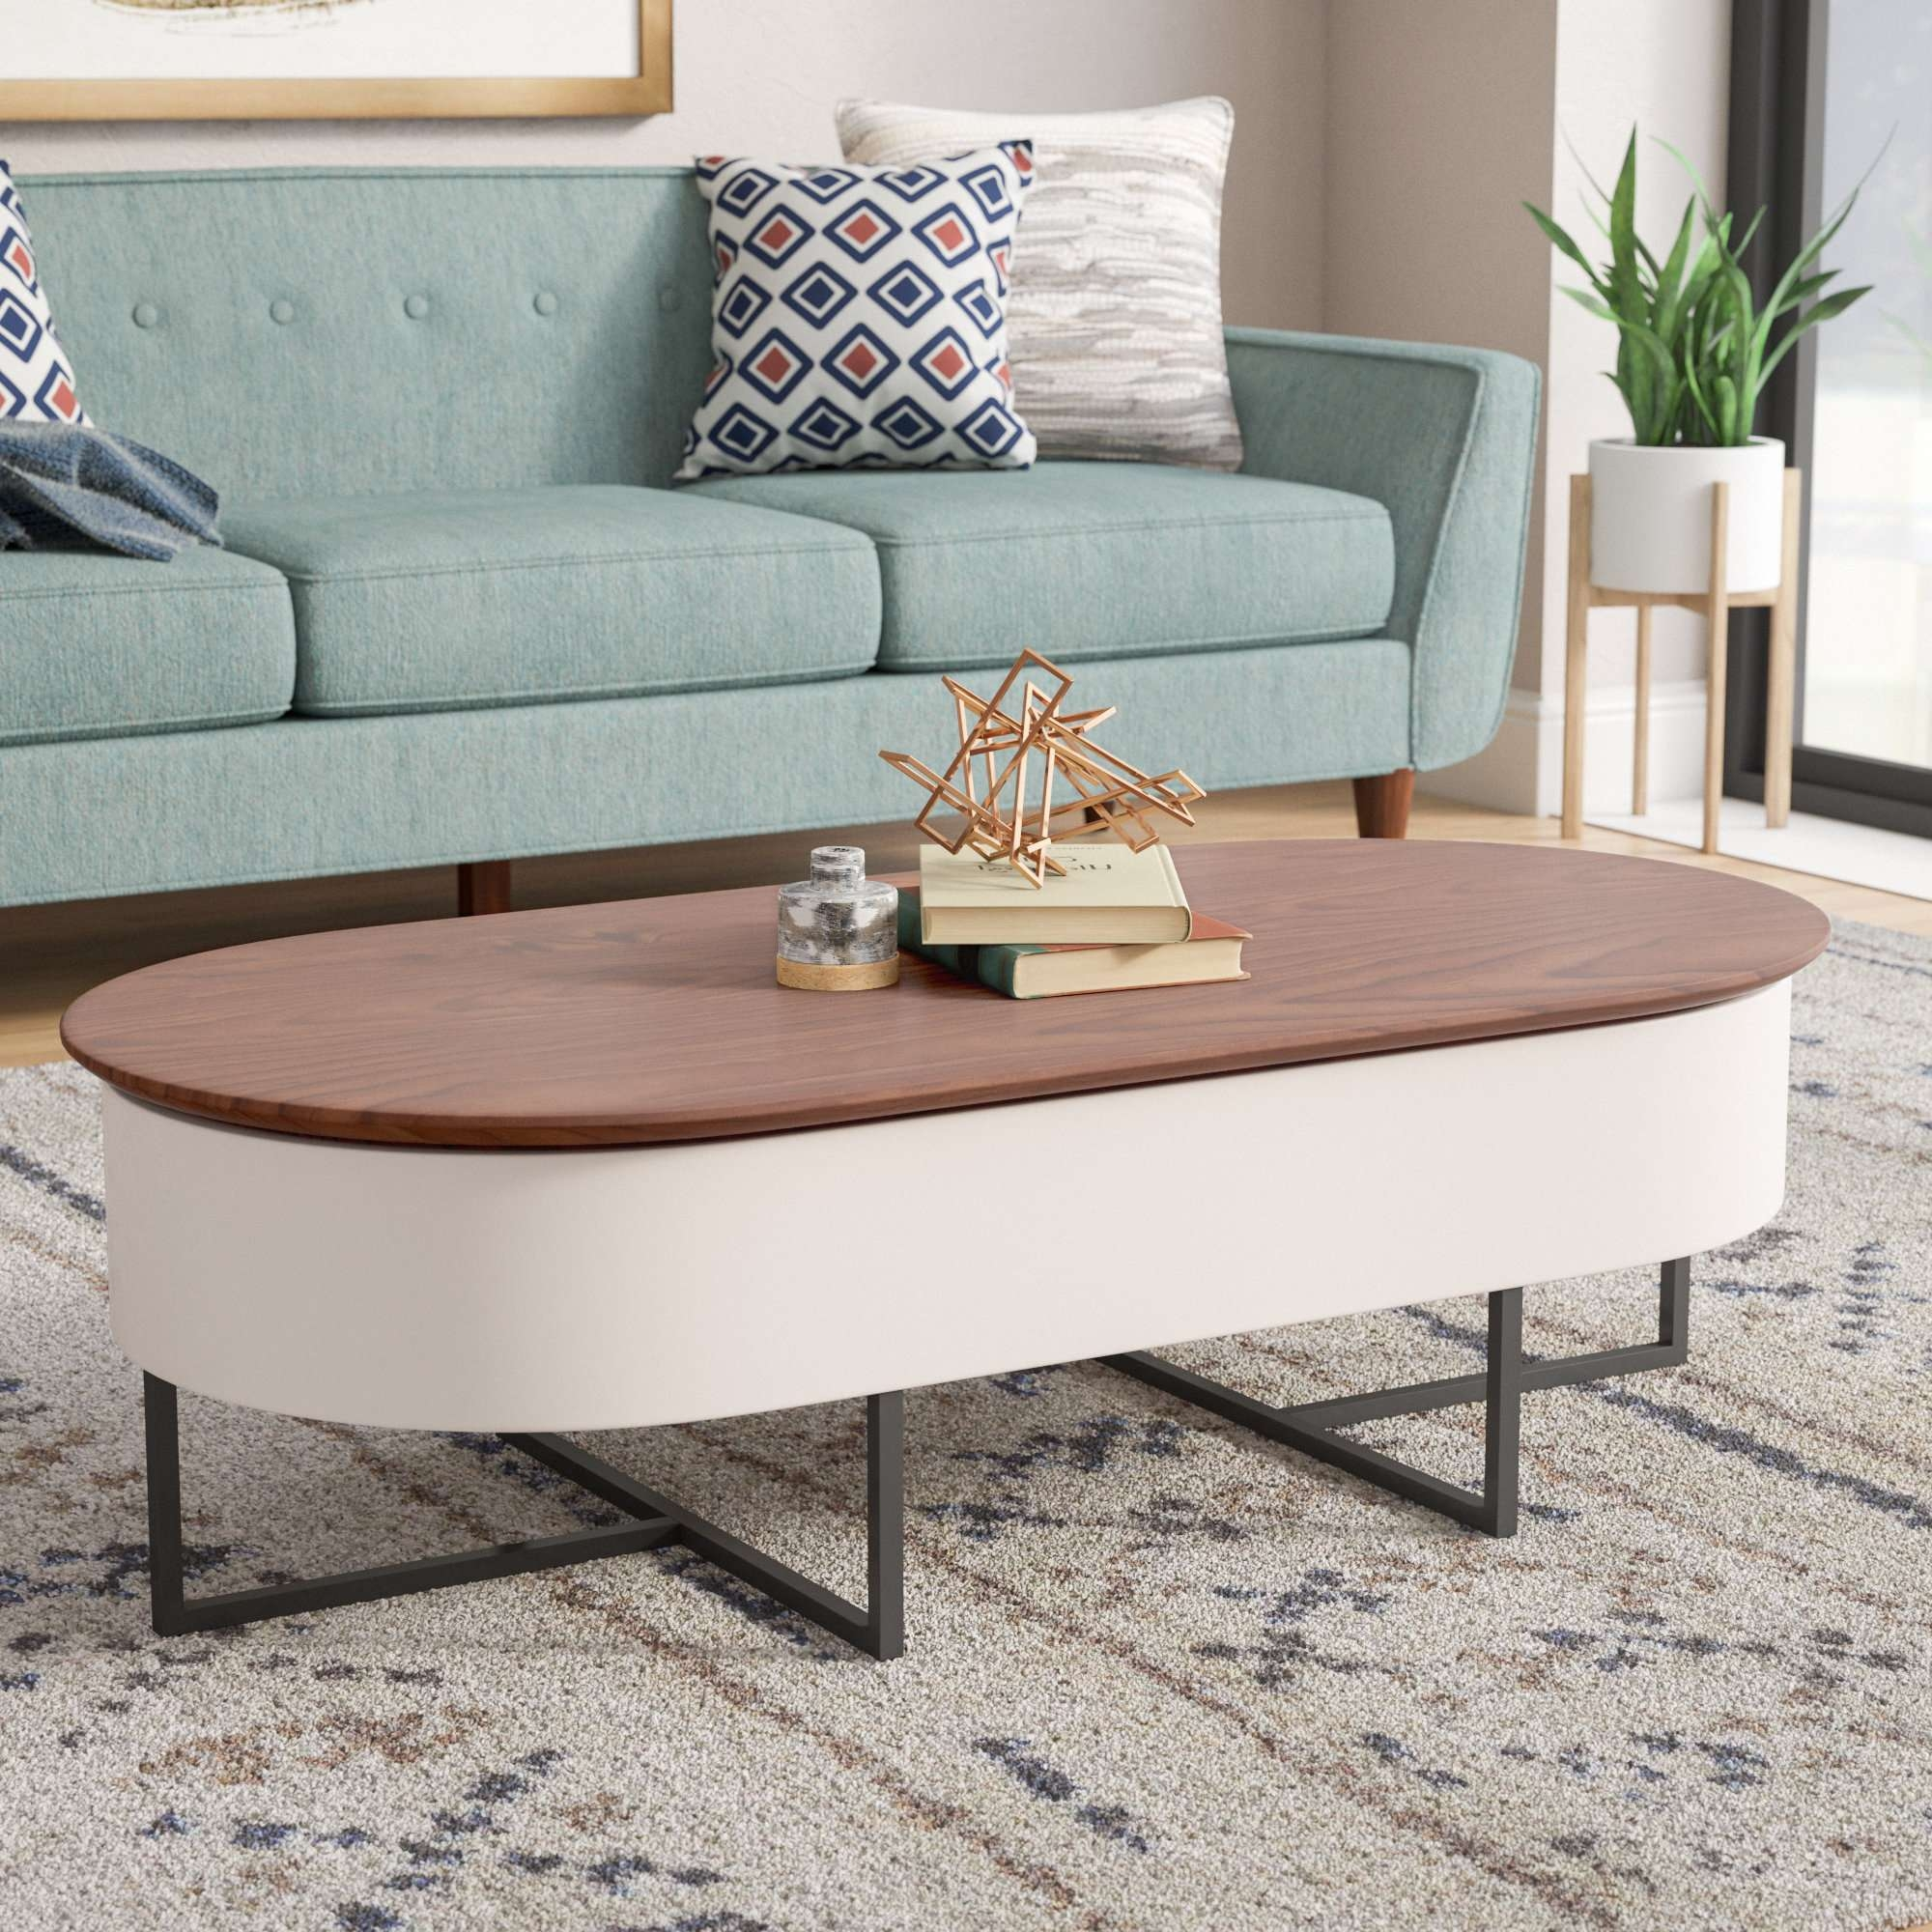 Well Liked Swing Up Coffee Tables With Regard To Lift Top Coffee Tables You'll Love (View 5 of 20)